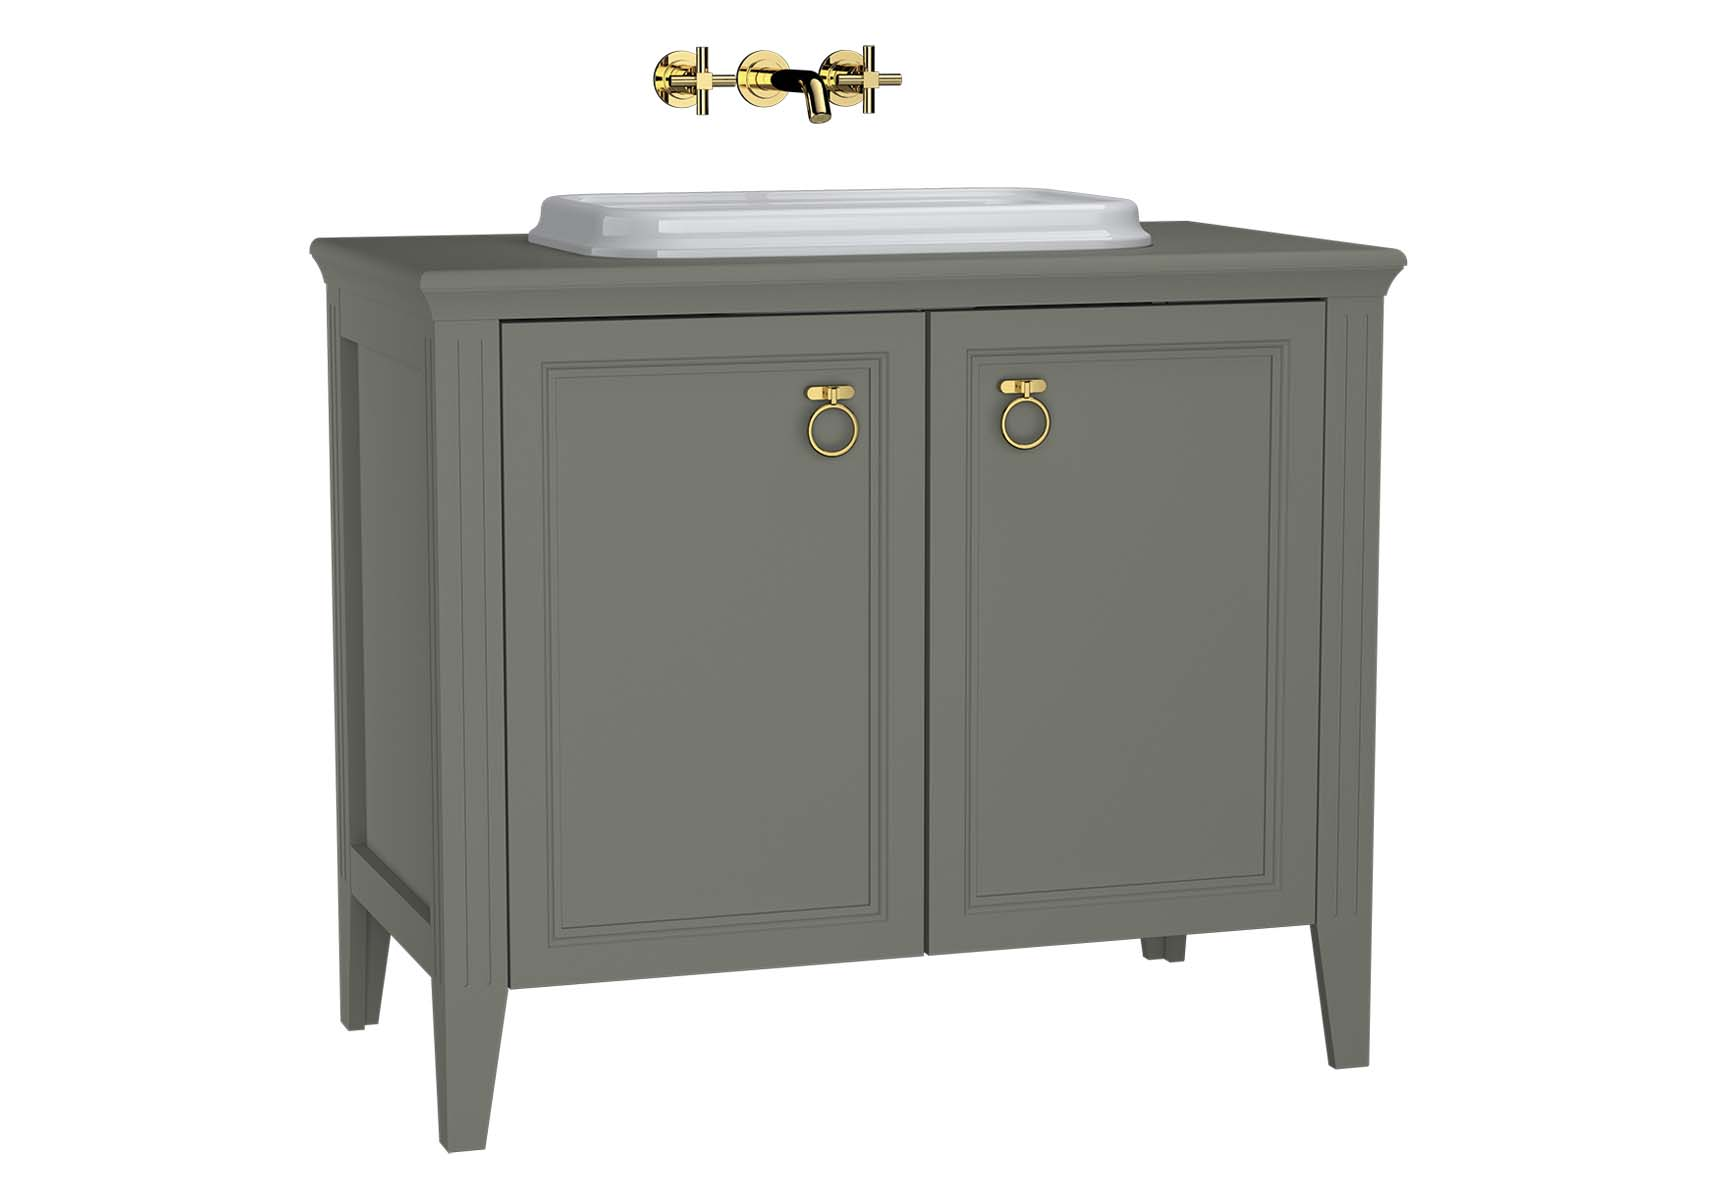 Valarte Washbasin Unit, 100 cm, with doors, with countertop washbasin, Matte Grey